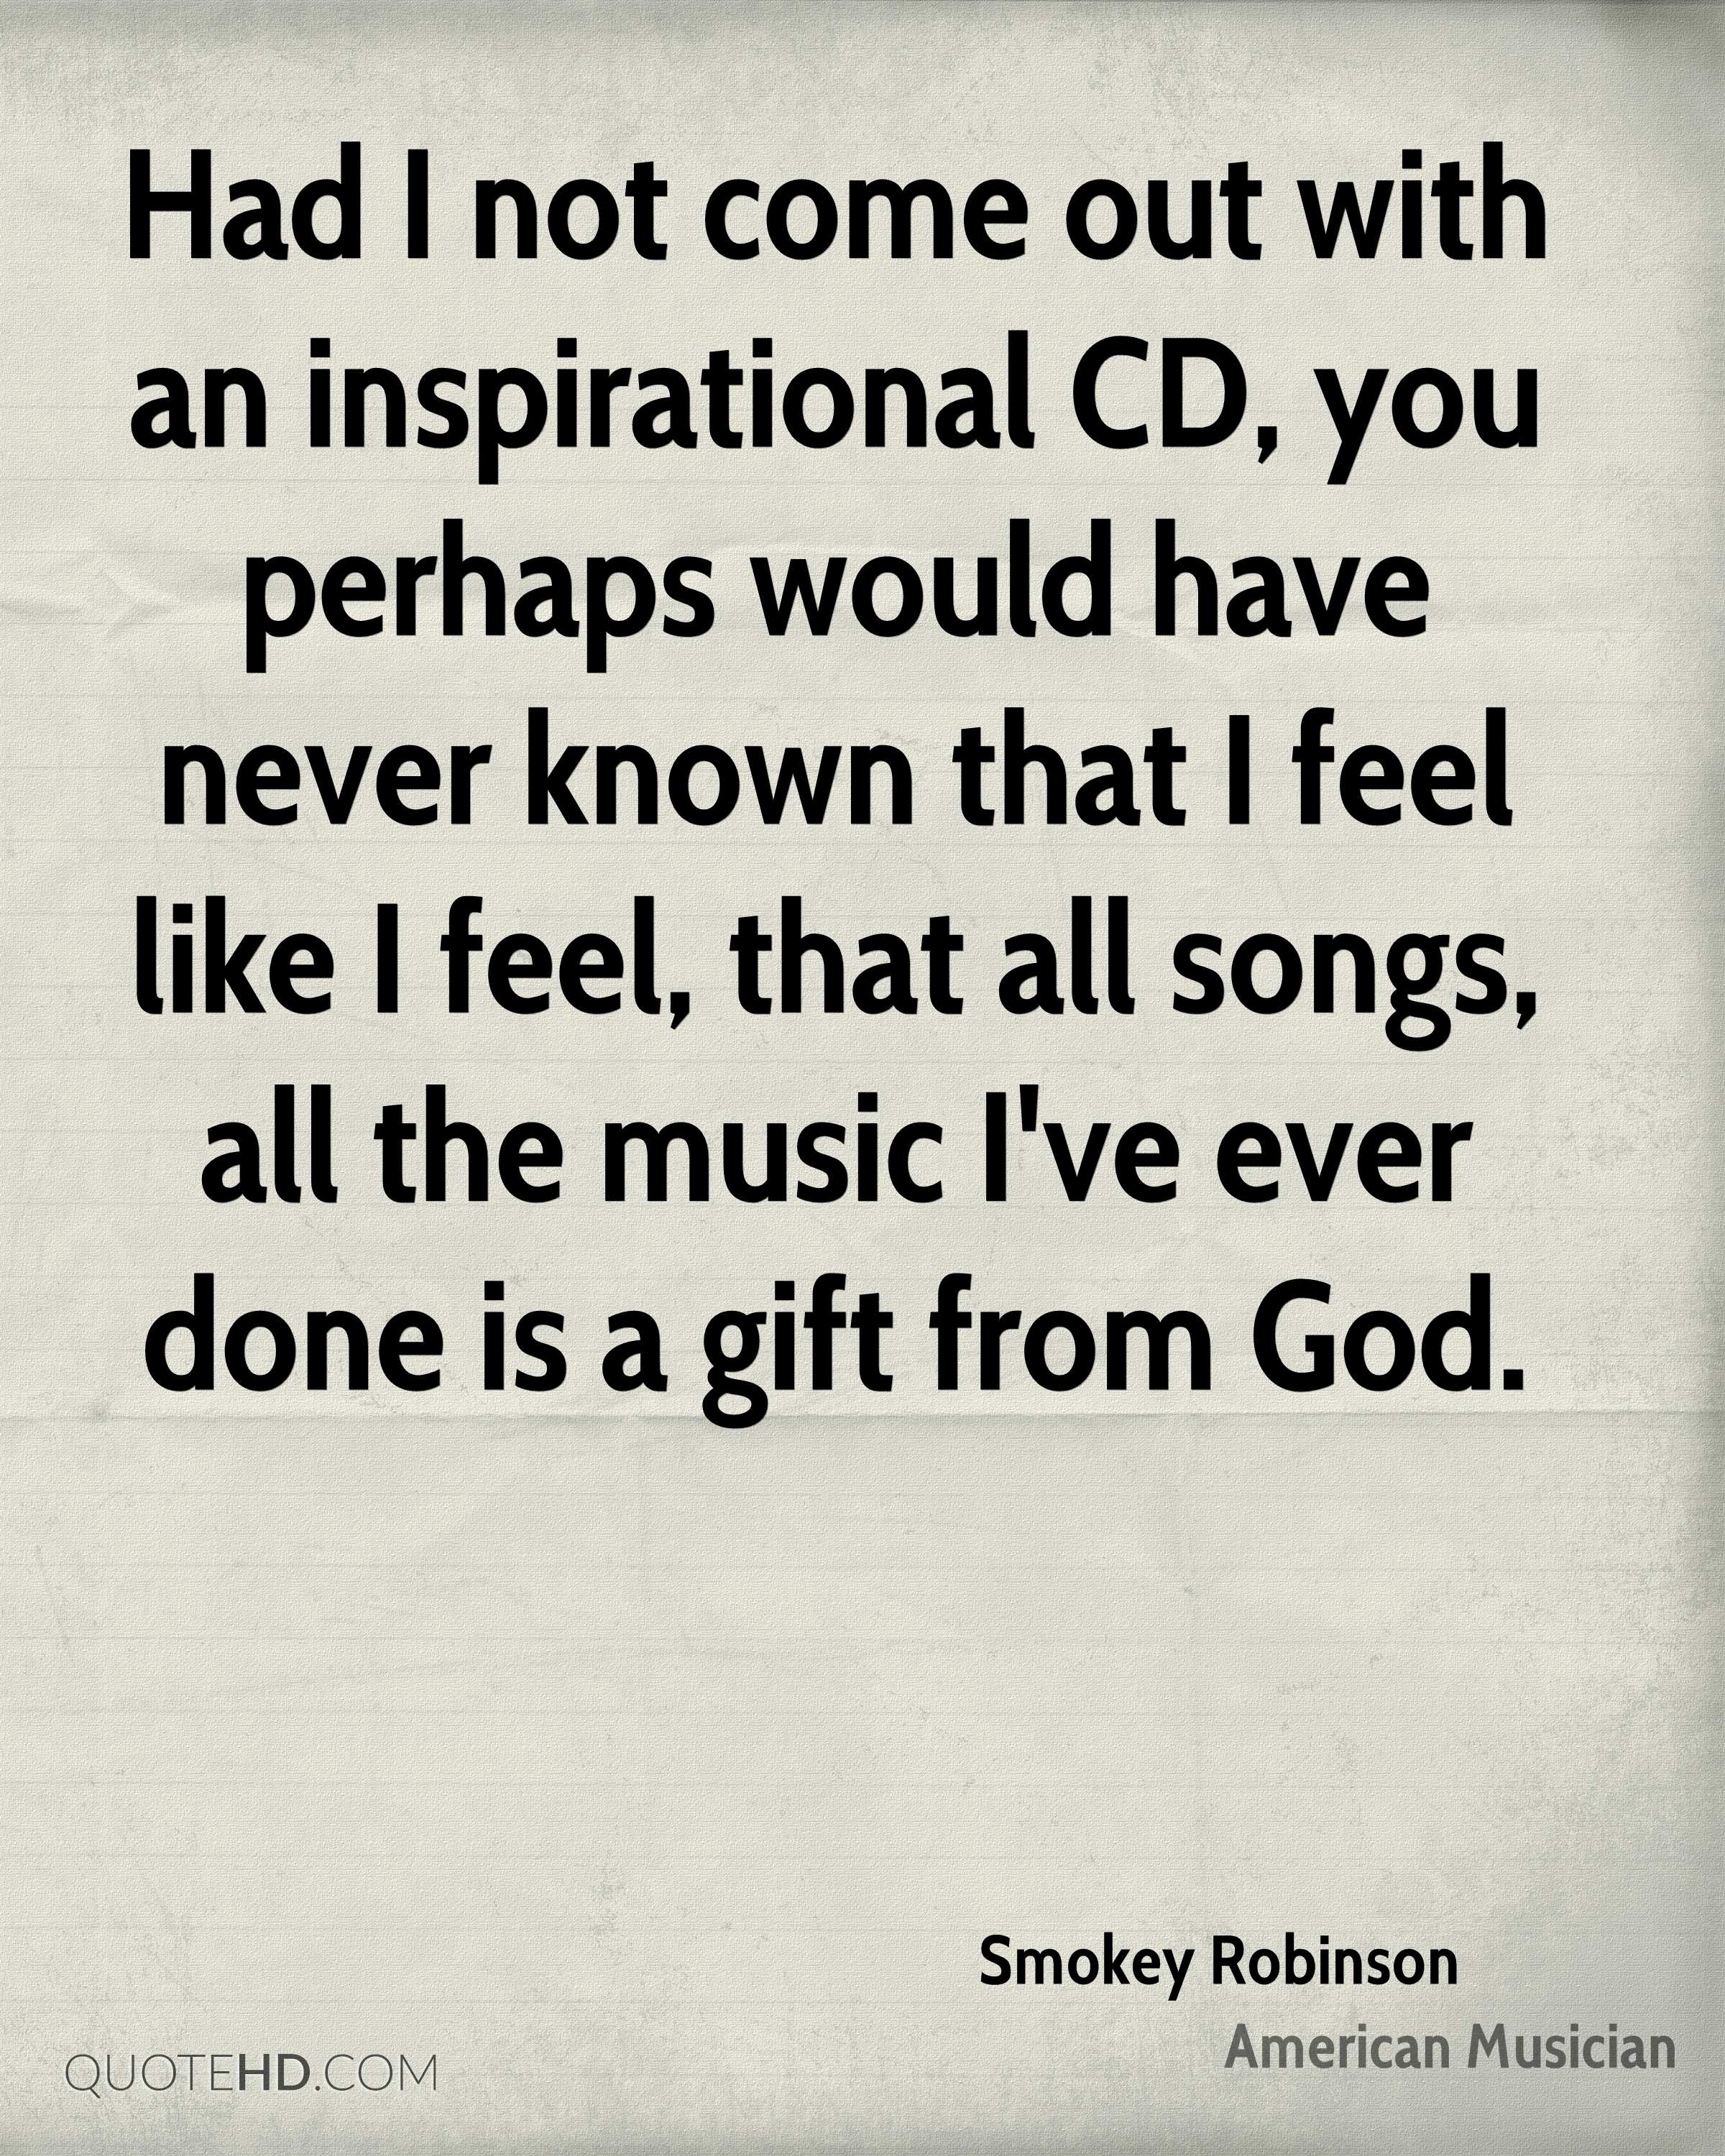 Had I not come out with an inspirational CD, you perhaps would have never known that I feel like I feel, that all songs, all the music I've ever done is a gift from God.